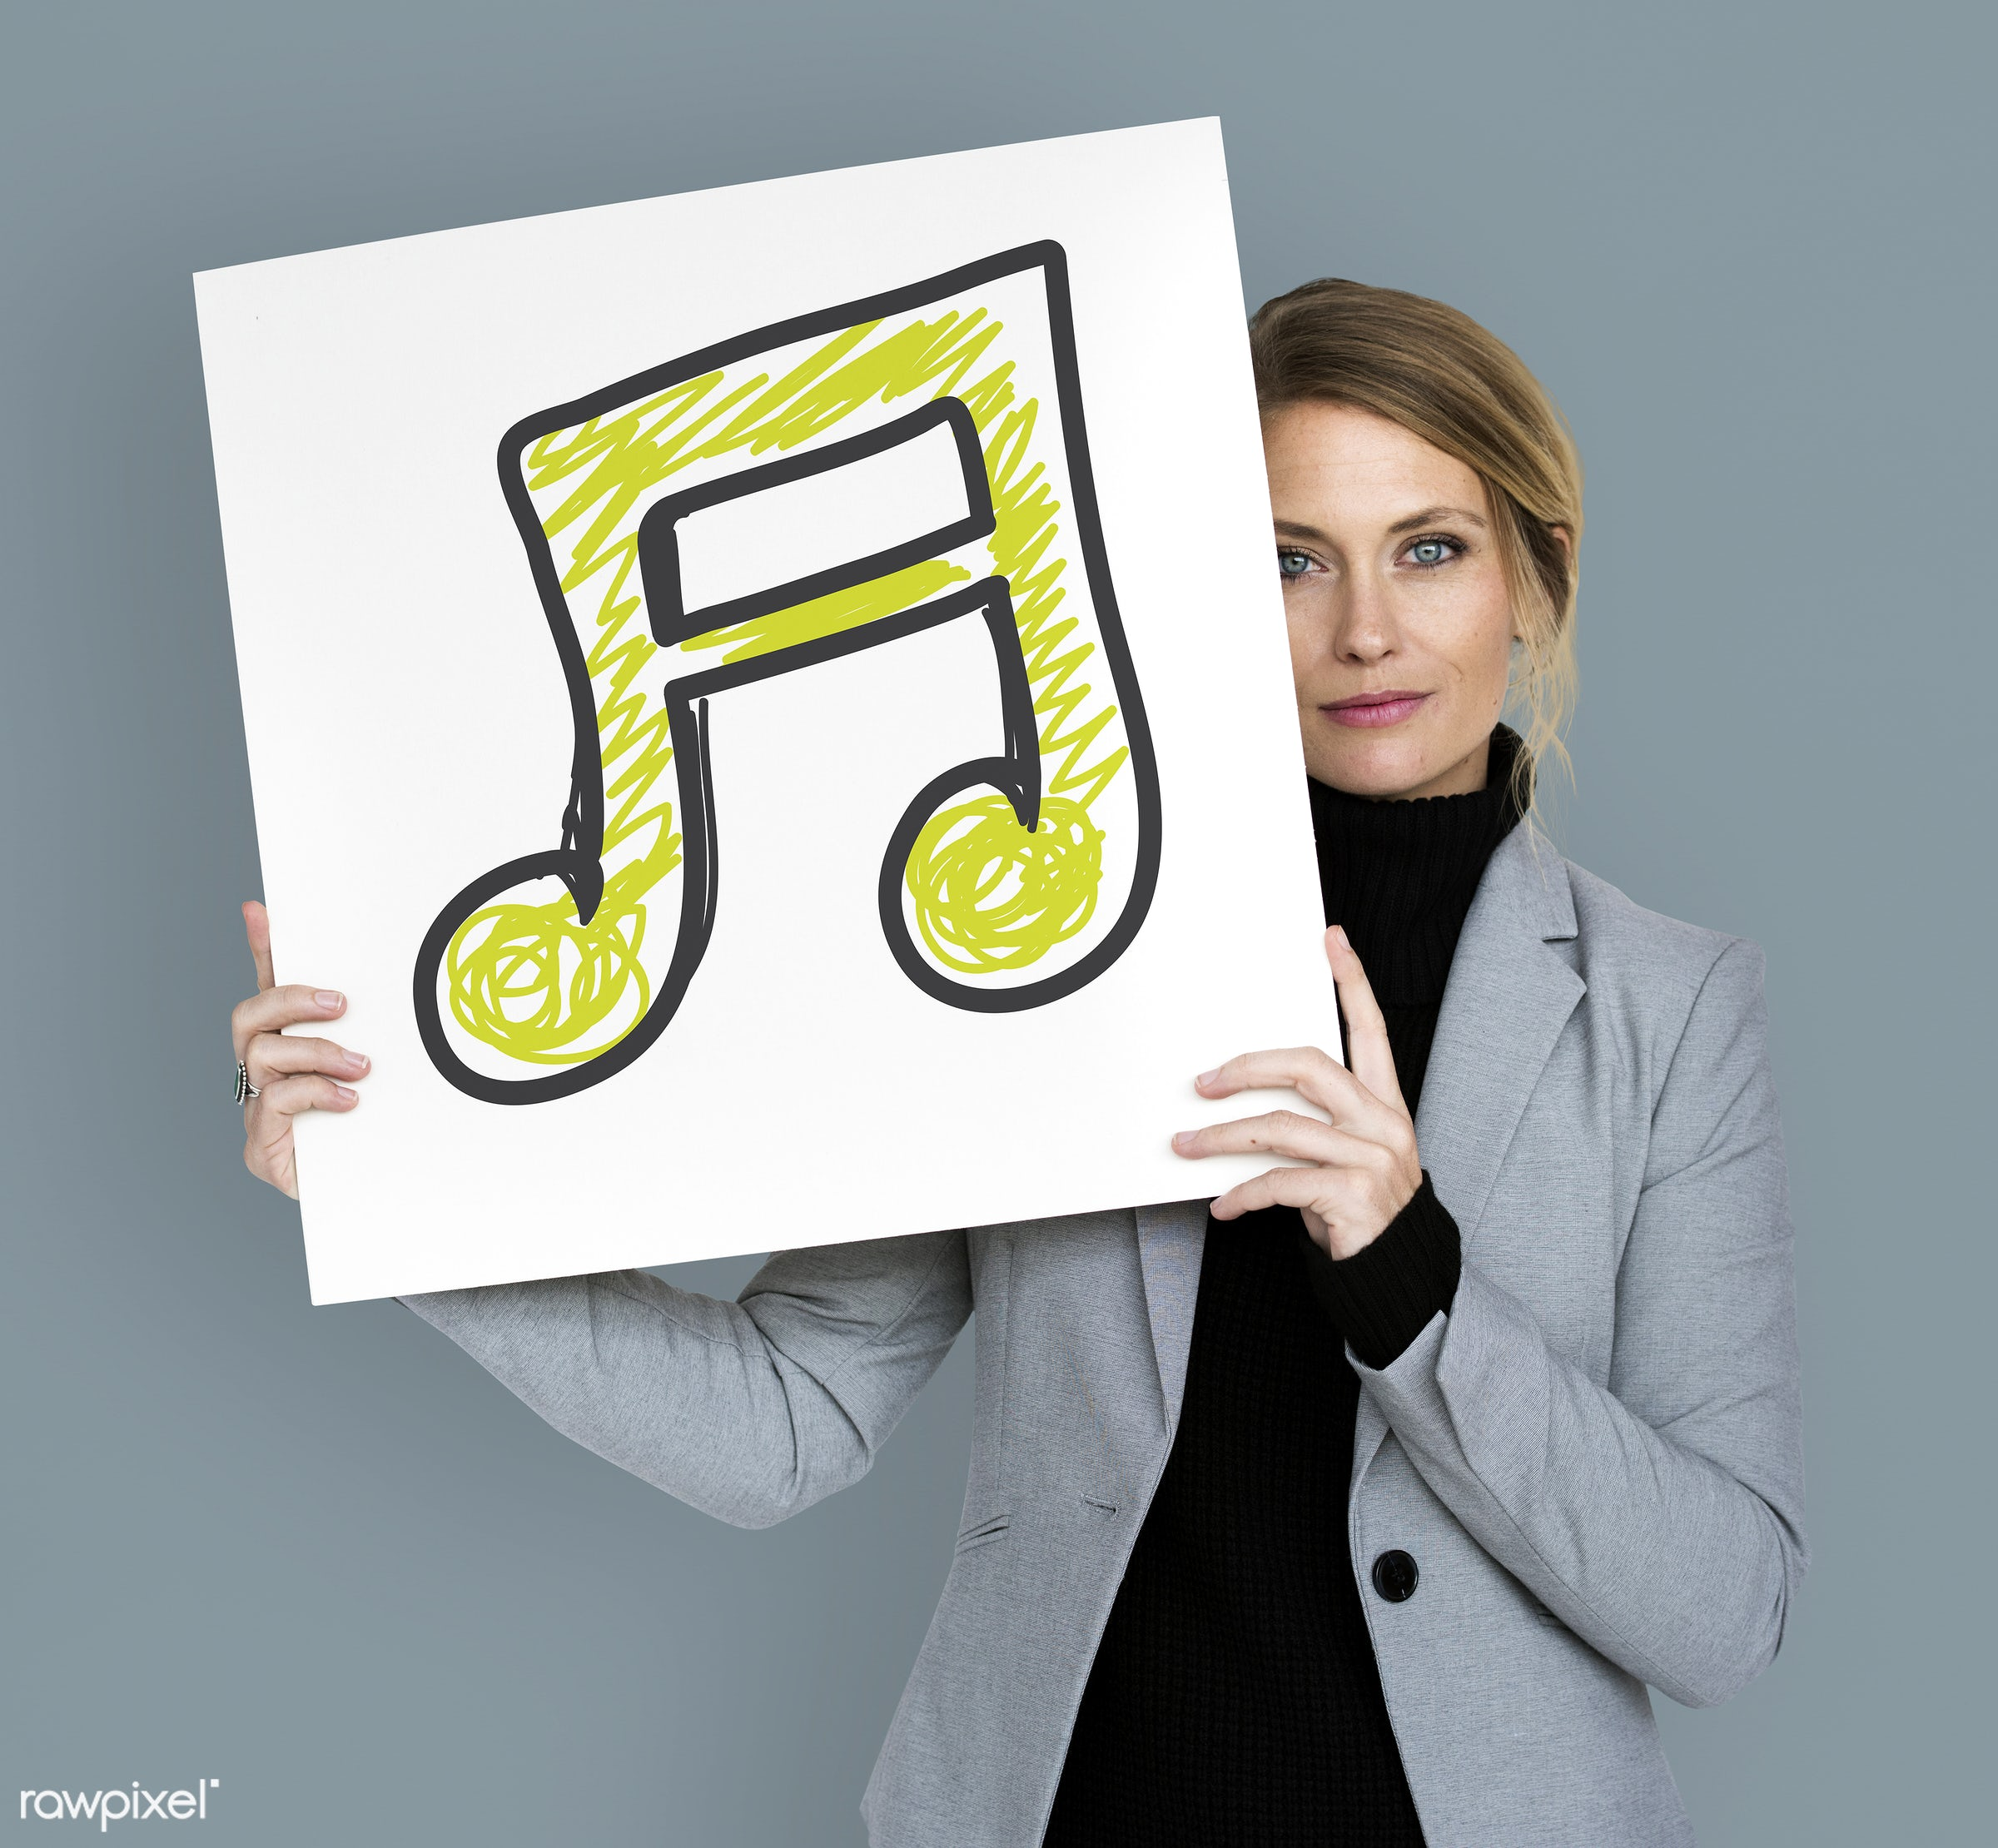 studio, expression, person, emblem, holding, people, caucasian, placard, music note, woman, smile, smiling, formal attire,...